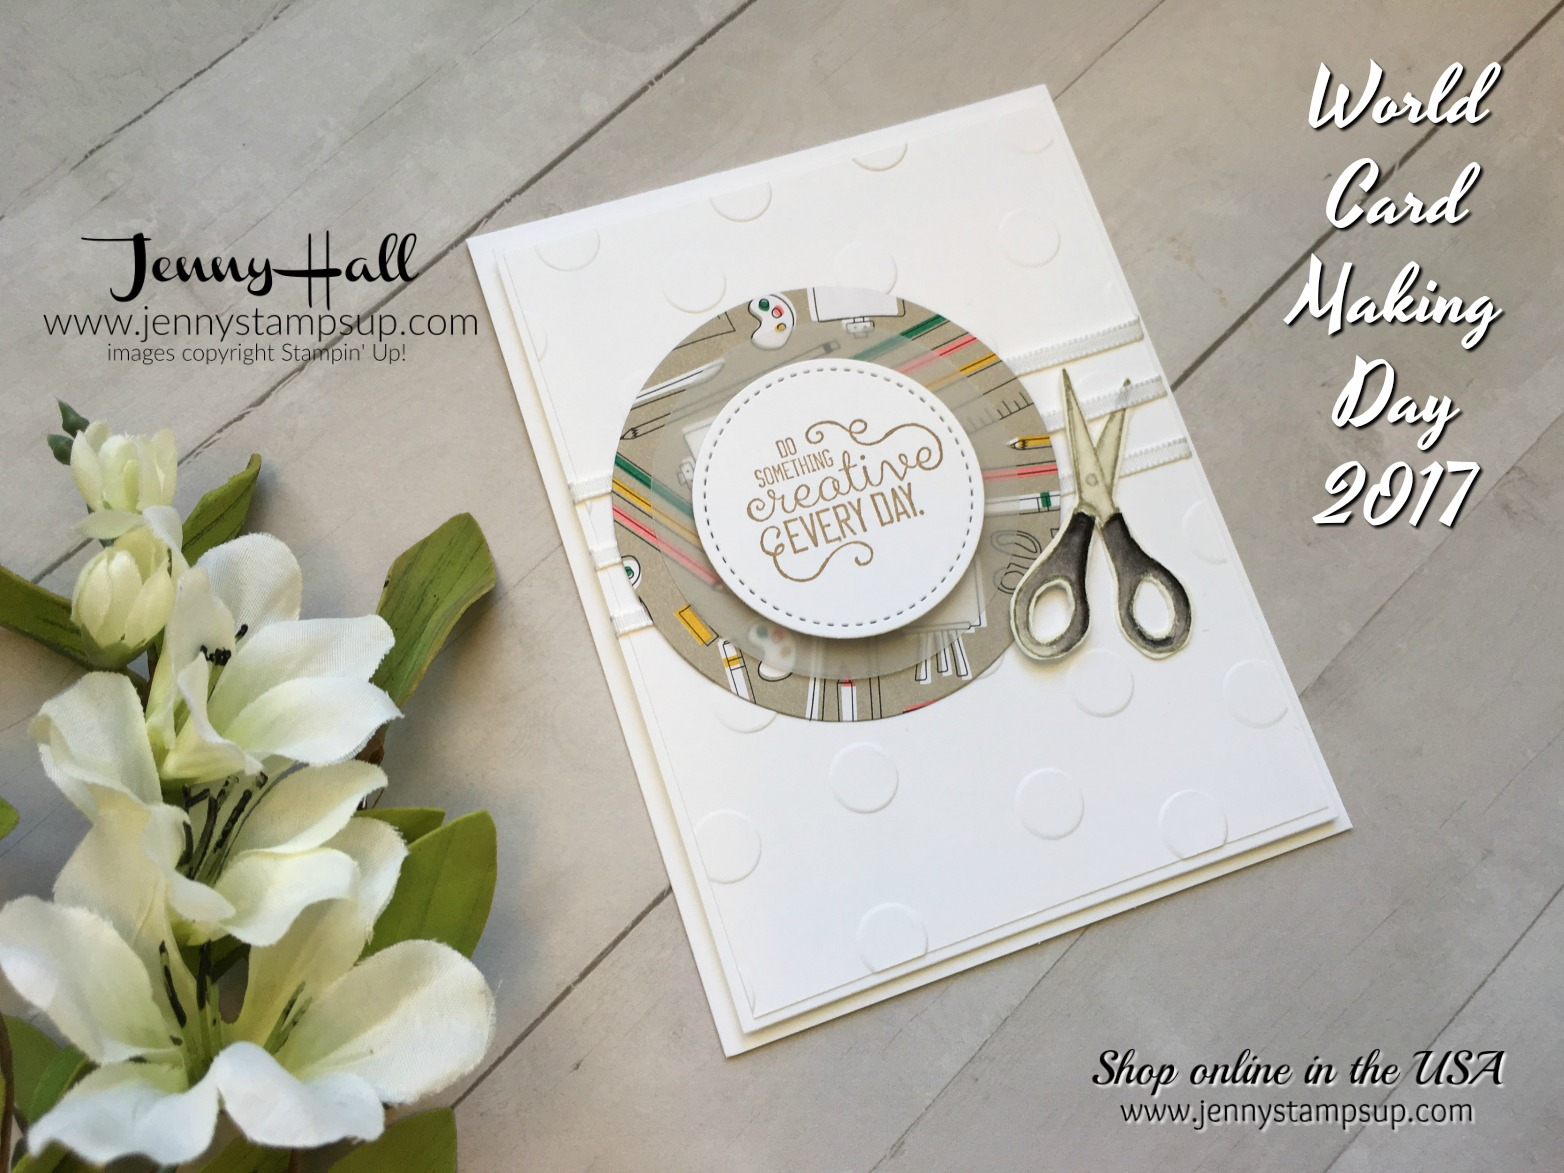 world card making day blog hop by Jenny Hall at www.jennyhalldesign.com